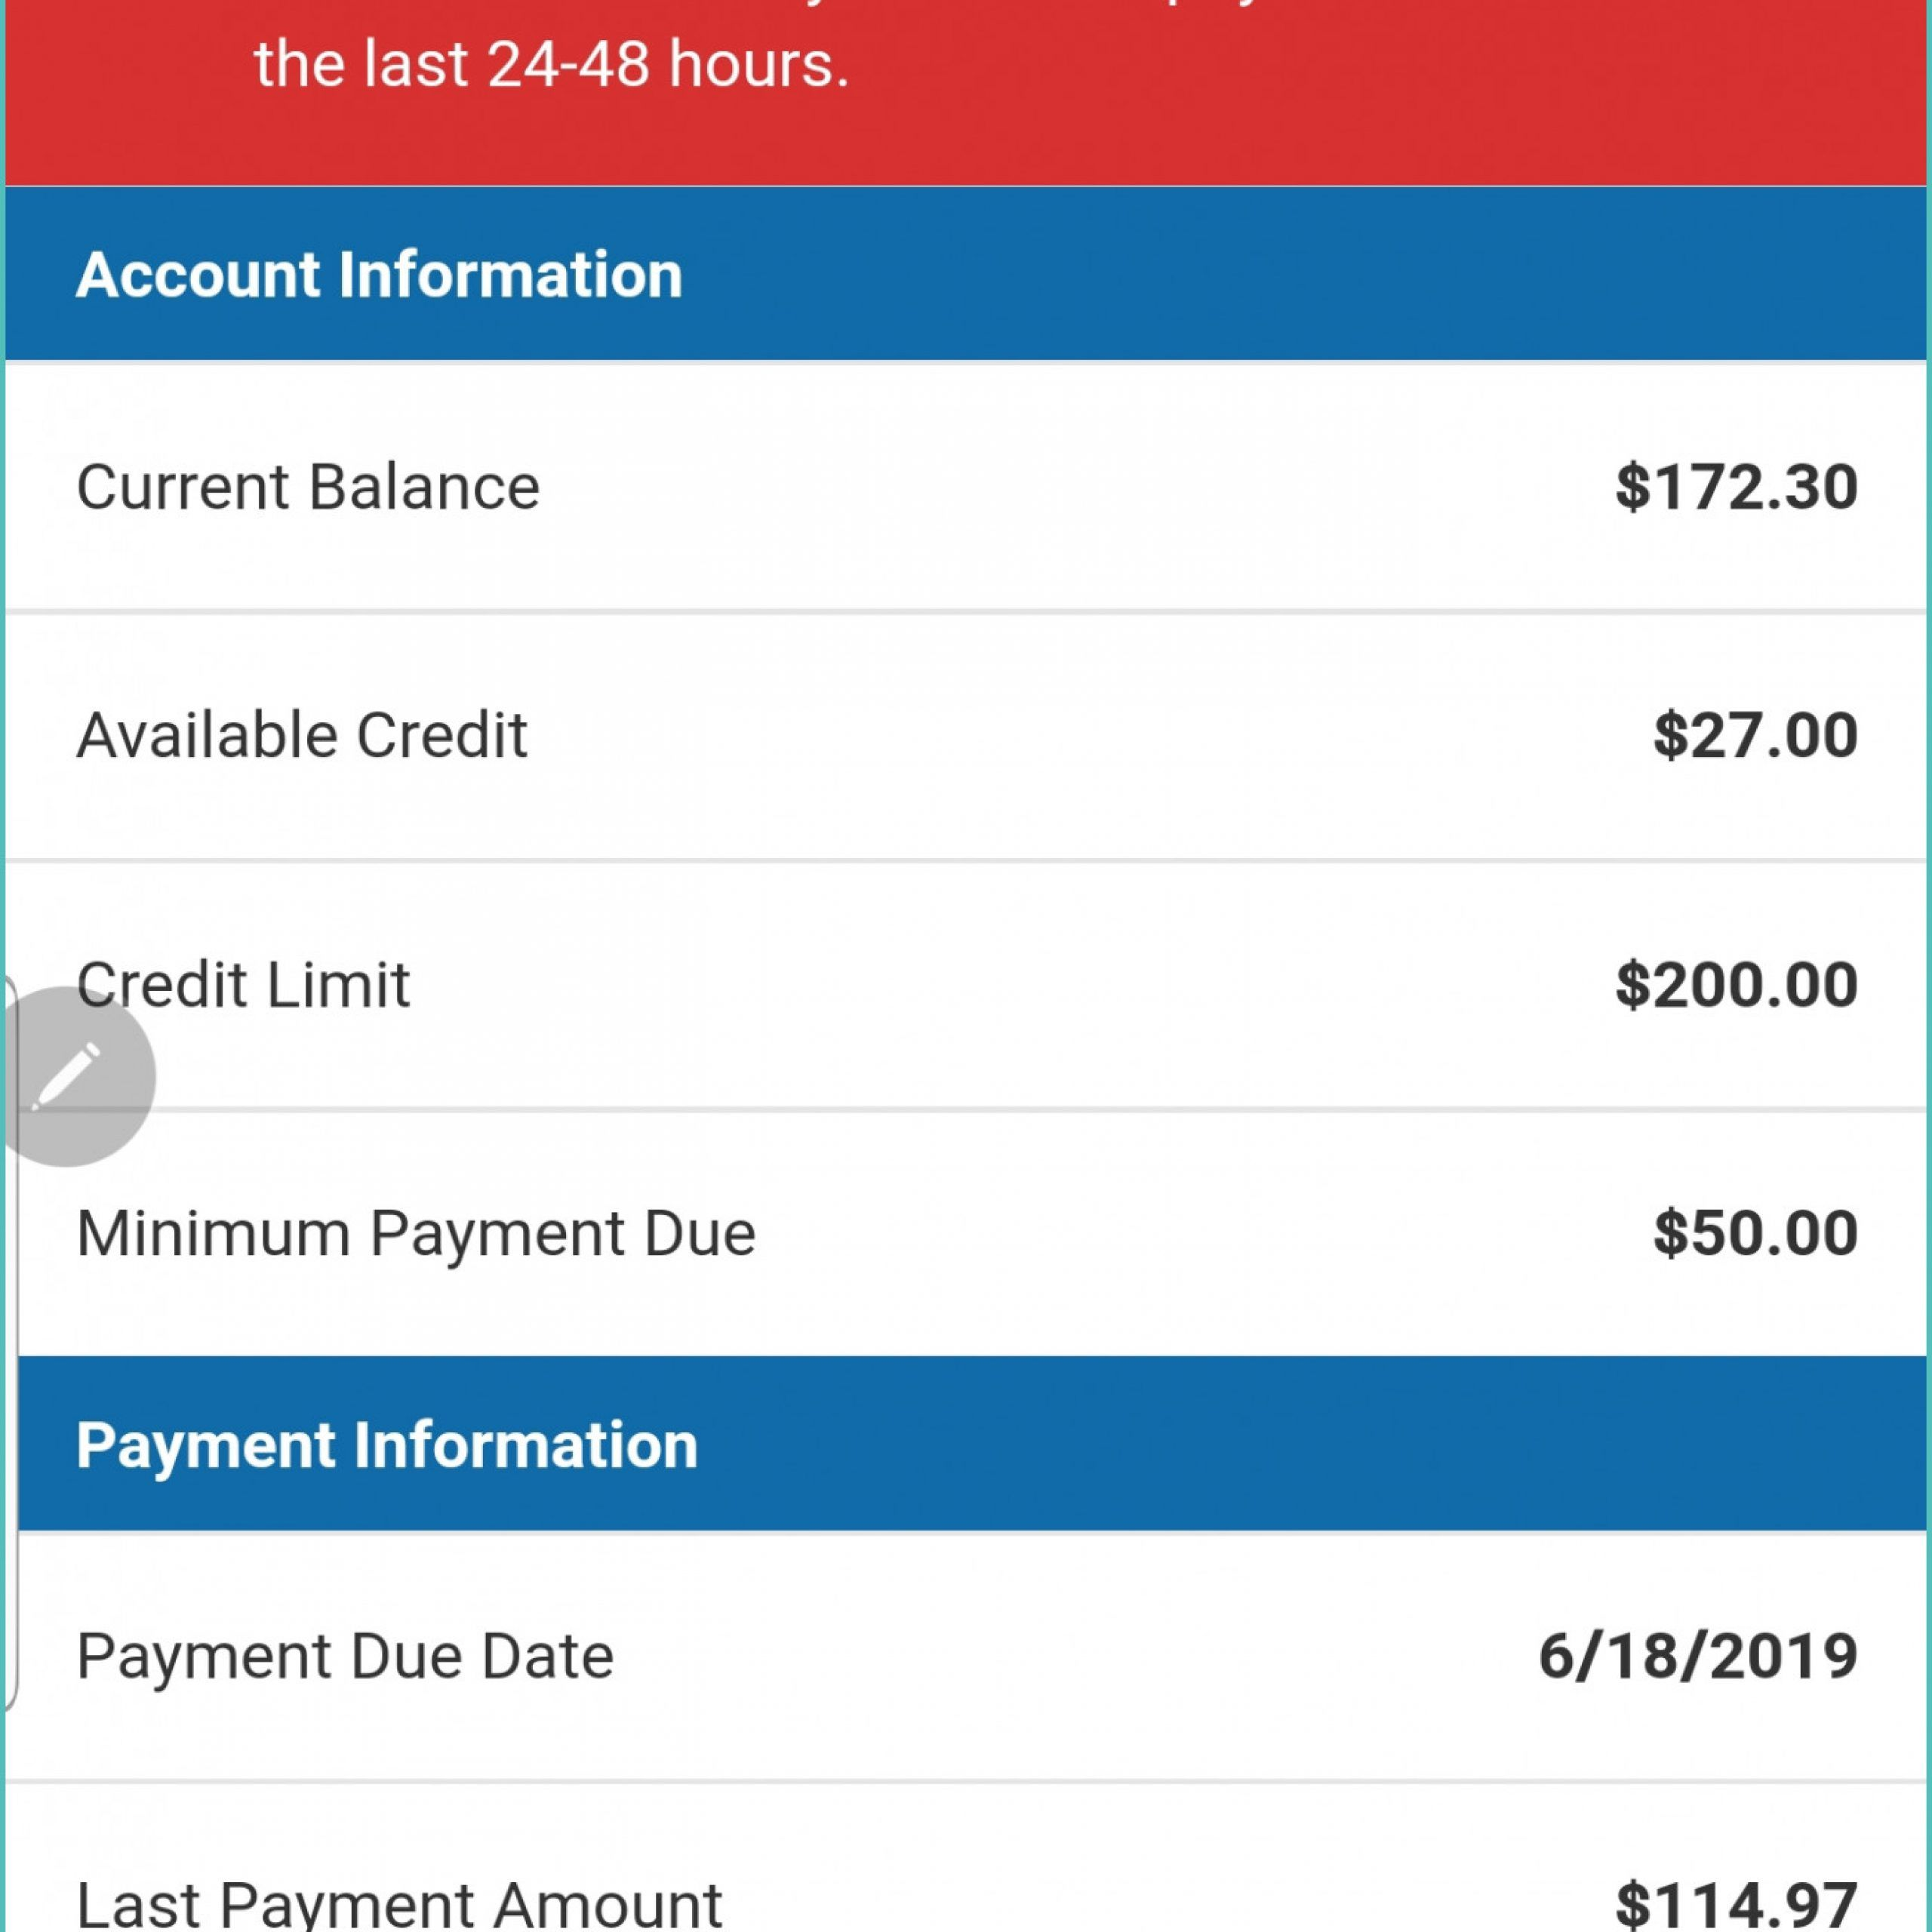 5dbfe254db8375437df24c944435a136 - How Long To Wait Between Amex Applications